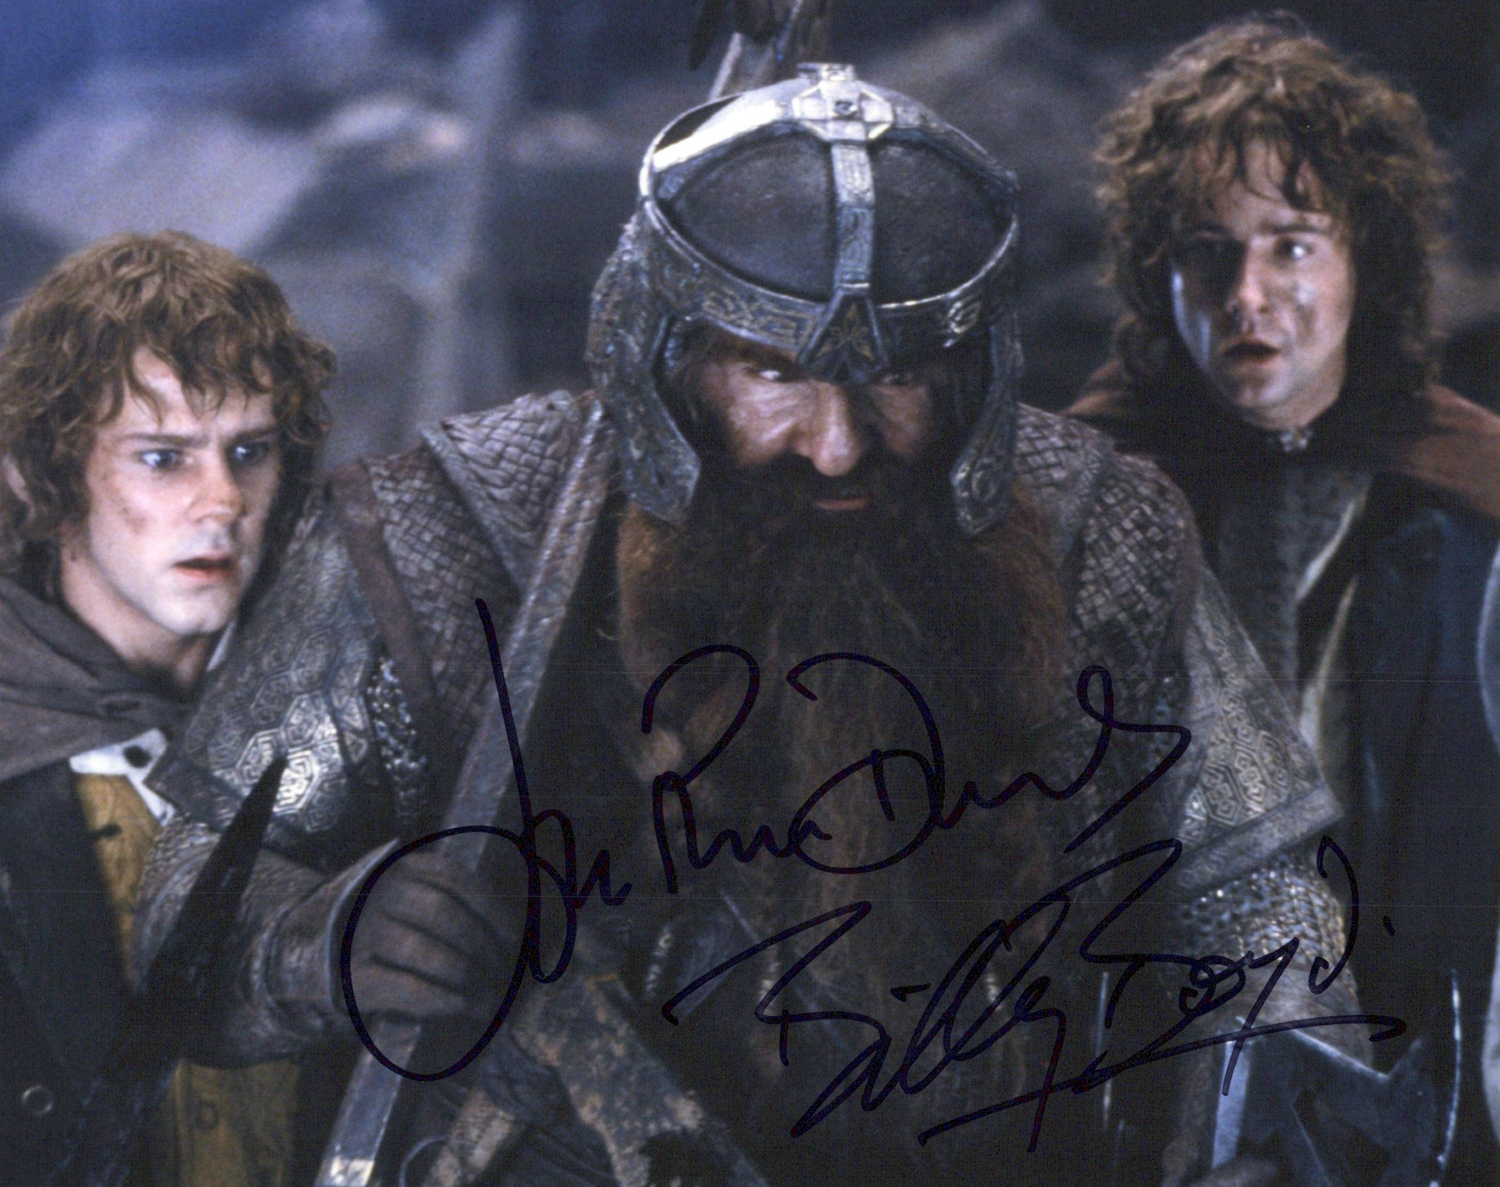 Billy Boyd & John Rhys Davies Original Autogramm auf Foto 20x25cm - Der Herr der Ringe/Lord of the Rings